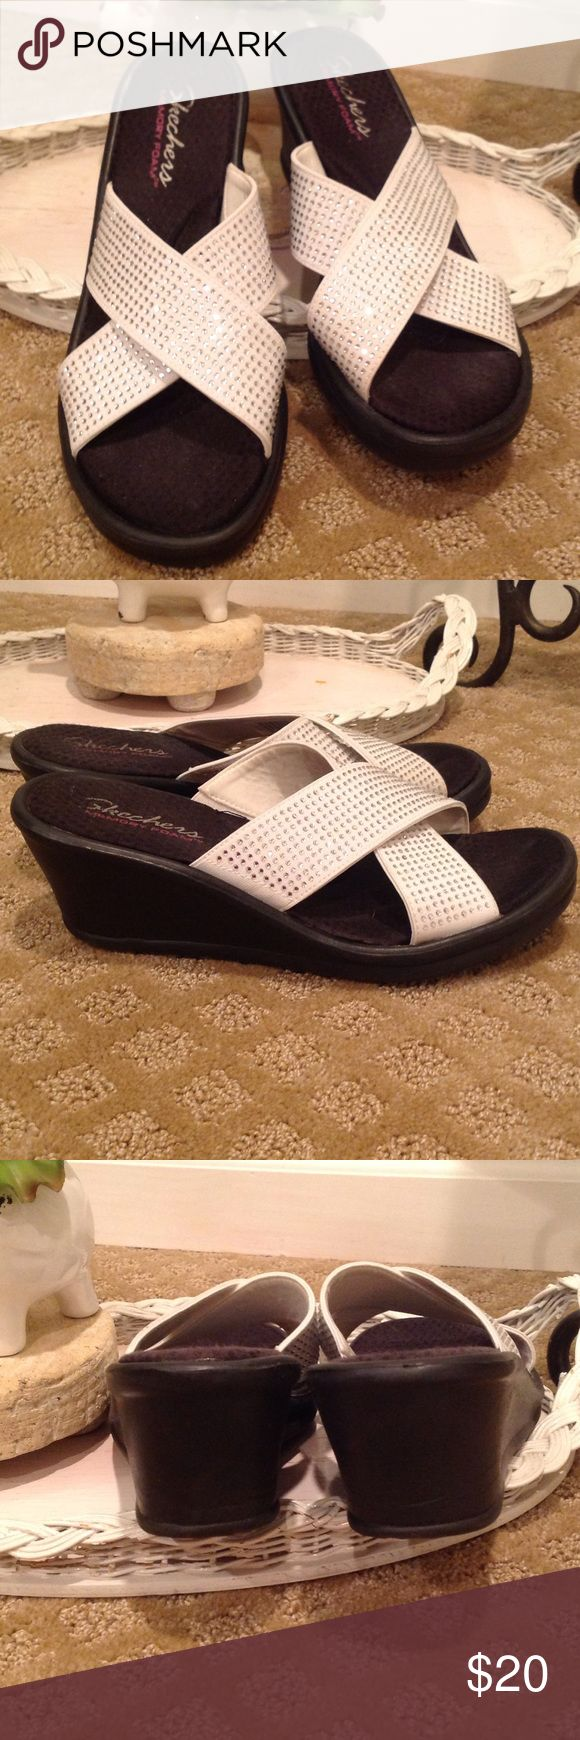 "SKECHERS WEDGE SLIDES WITH BLING😘 SKECHERS WEDGE SLIDES . WHITE WITH ""BLING"". IT NOT ONLY IS GORGEOUS...IT IS THE MOST COMFORTABLE SHOE💕 Skechers Shoes Wedges"